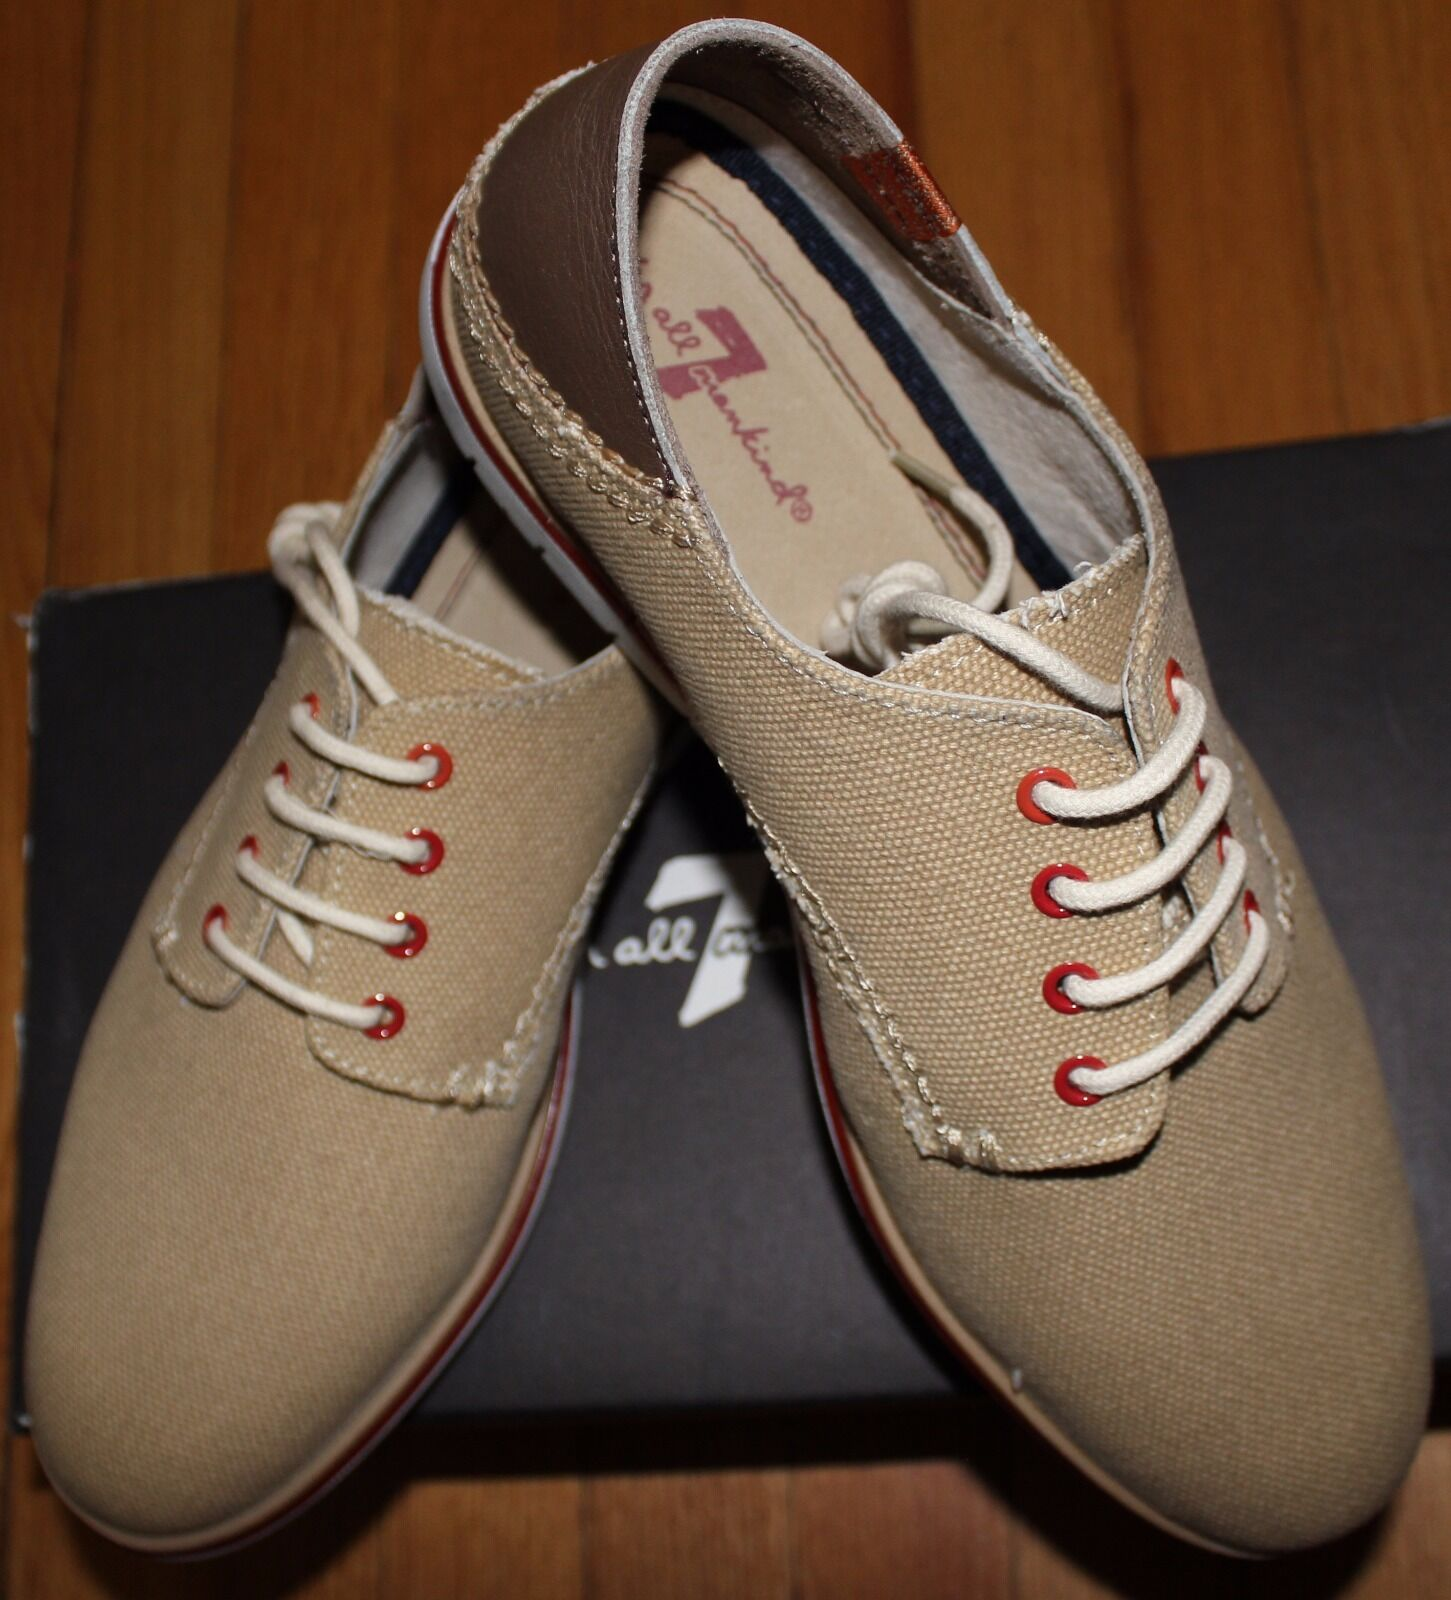 120 7 FOR ALL MANKIND BEIGE LACE UP SNEAKER SZ 43.5EU 9.5UK  10.5 US